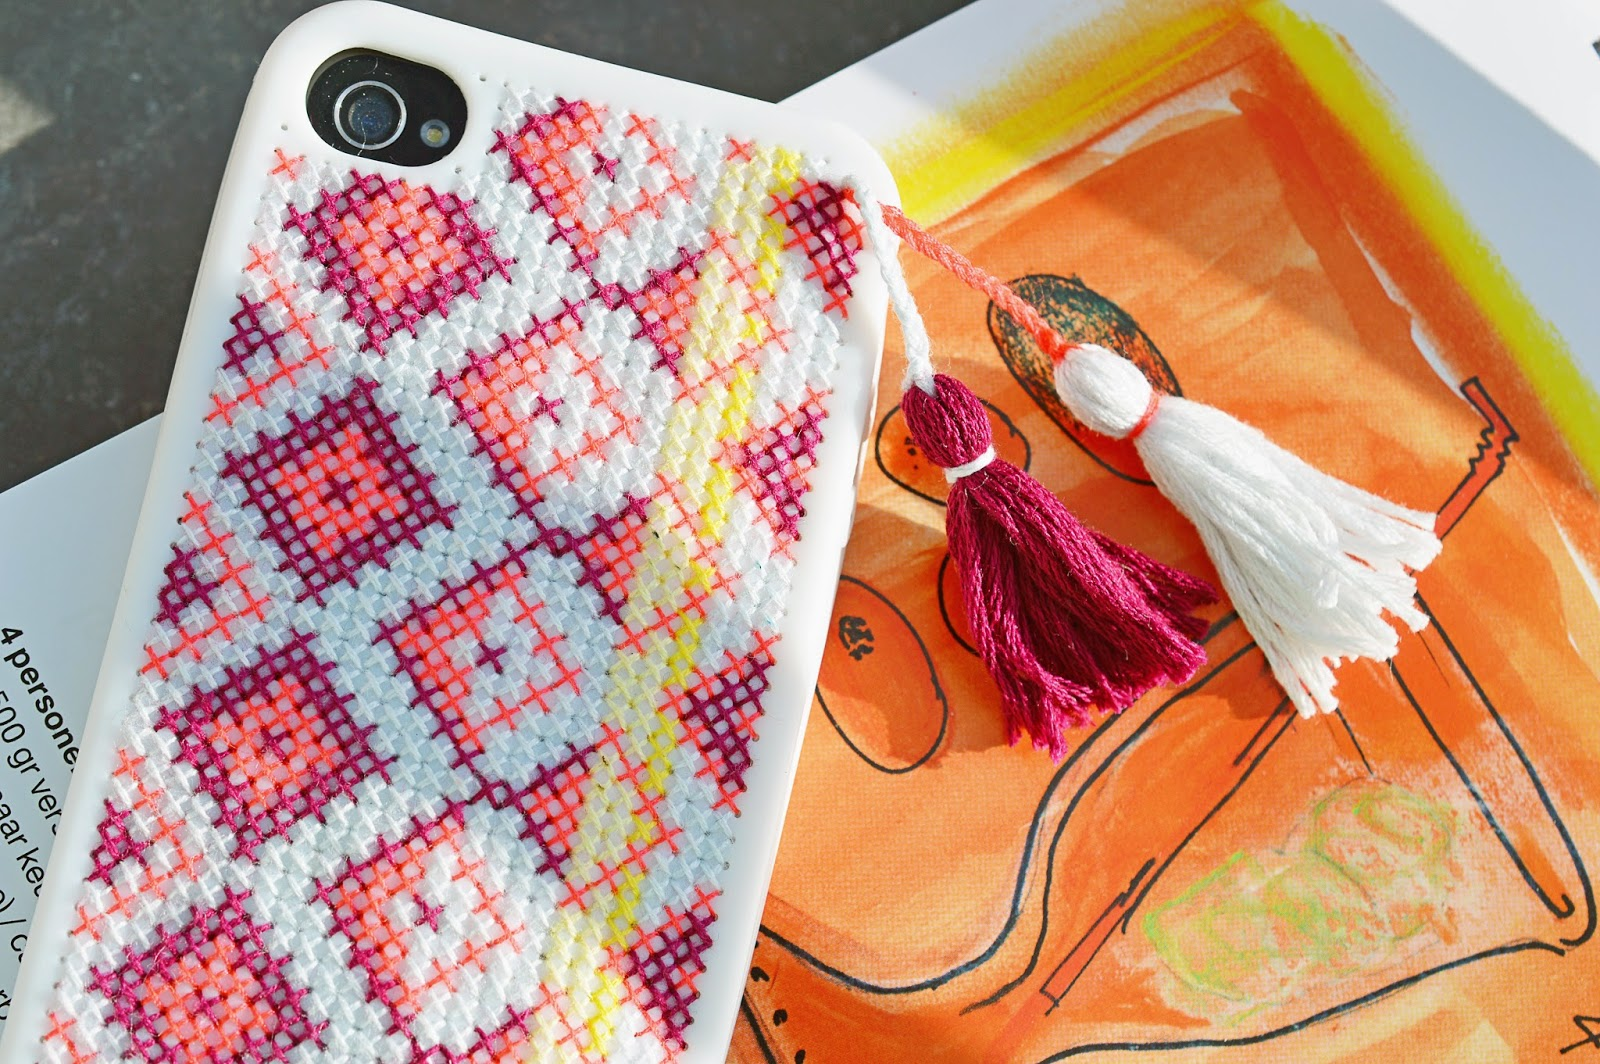 Diy embroidered iphone case free template motte for Diy phone case template